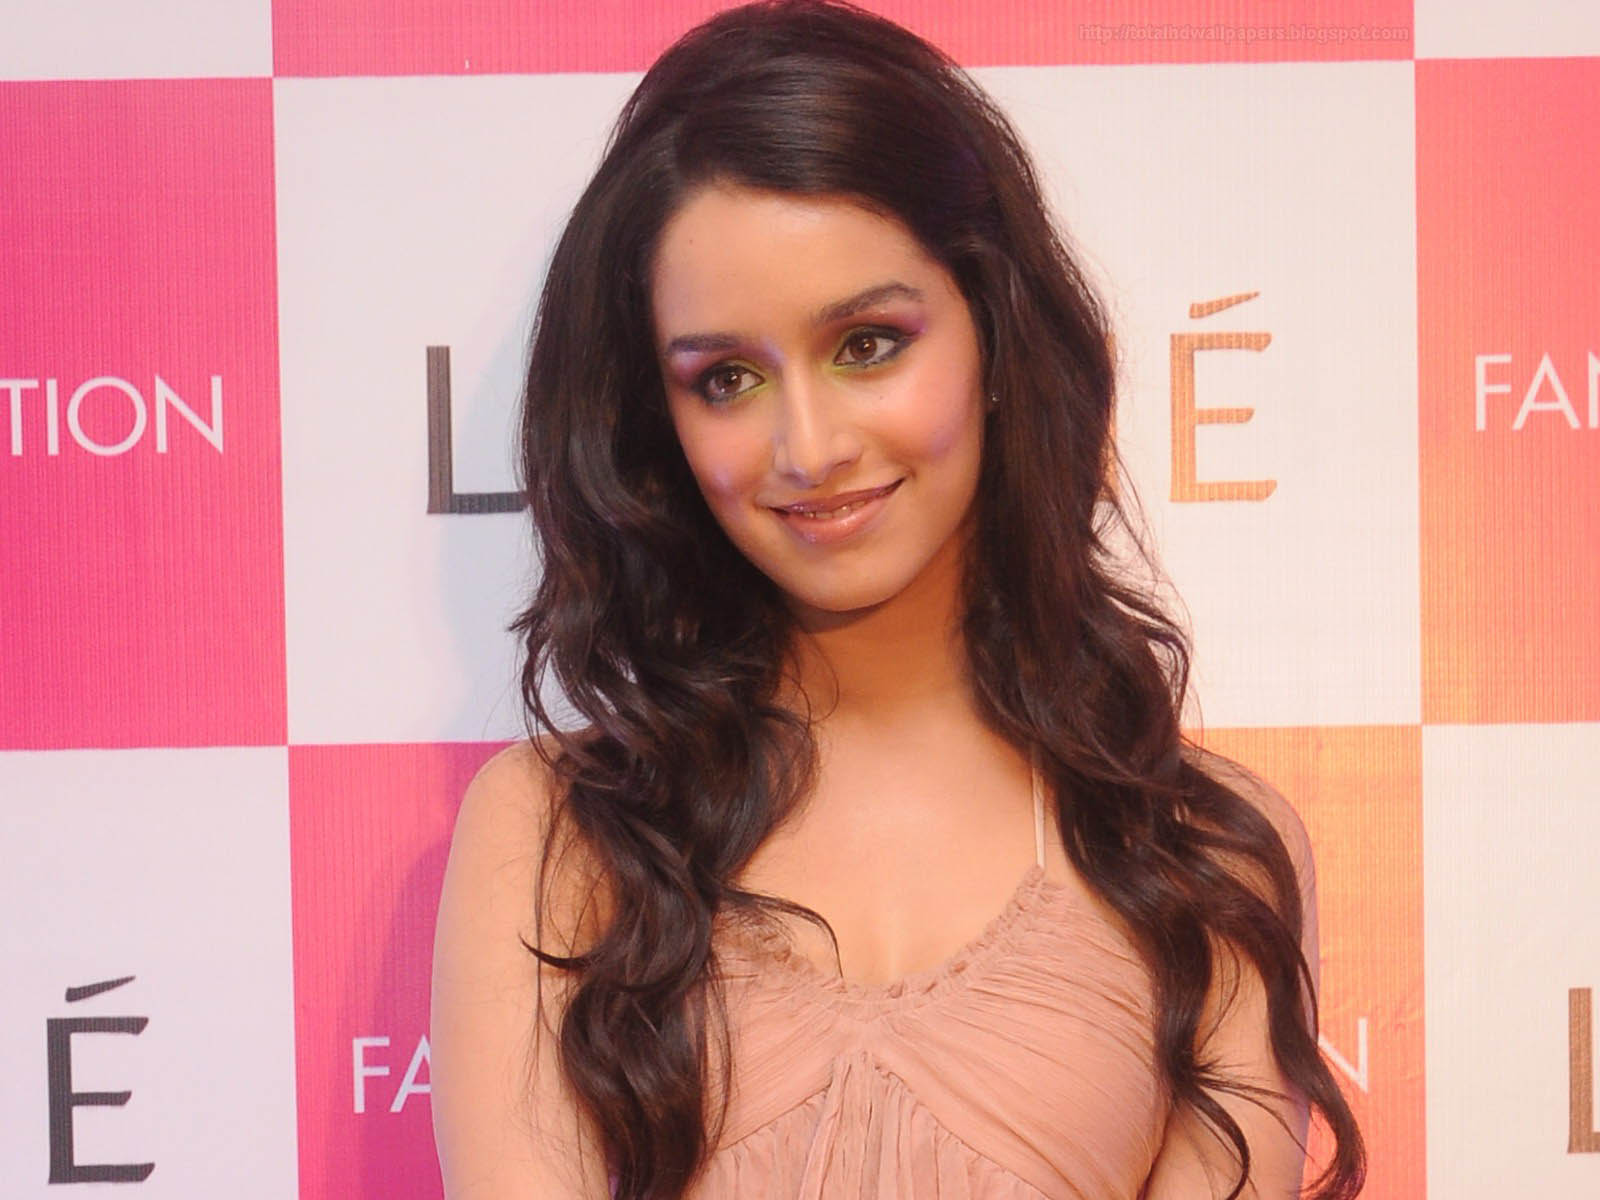 facebook hd images: shraddha kapoor wallpapers hd